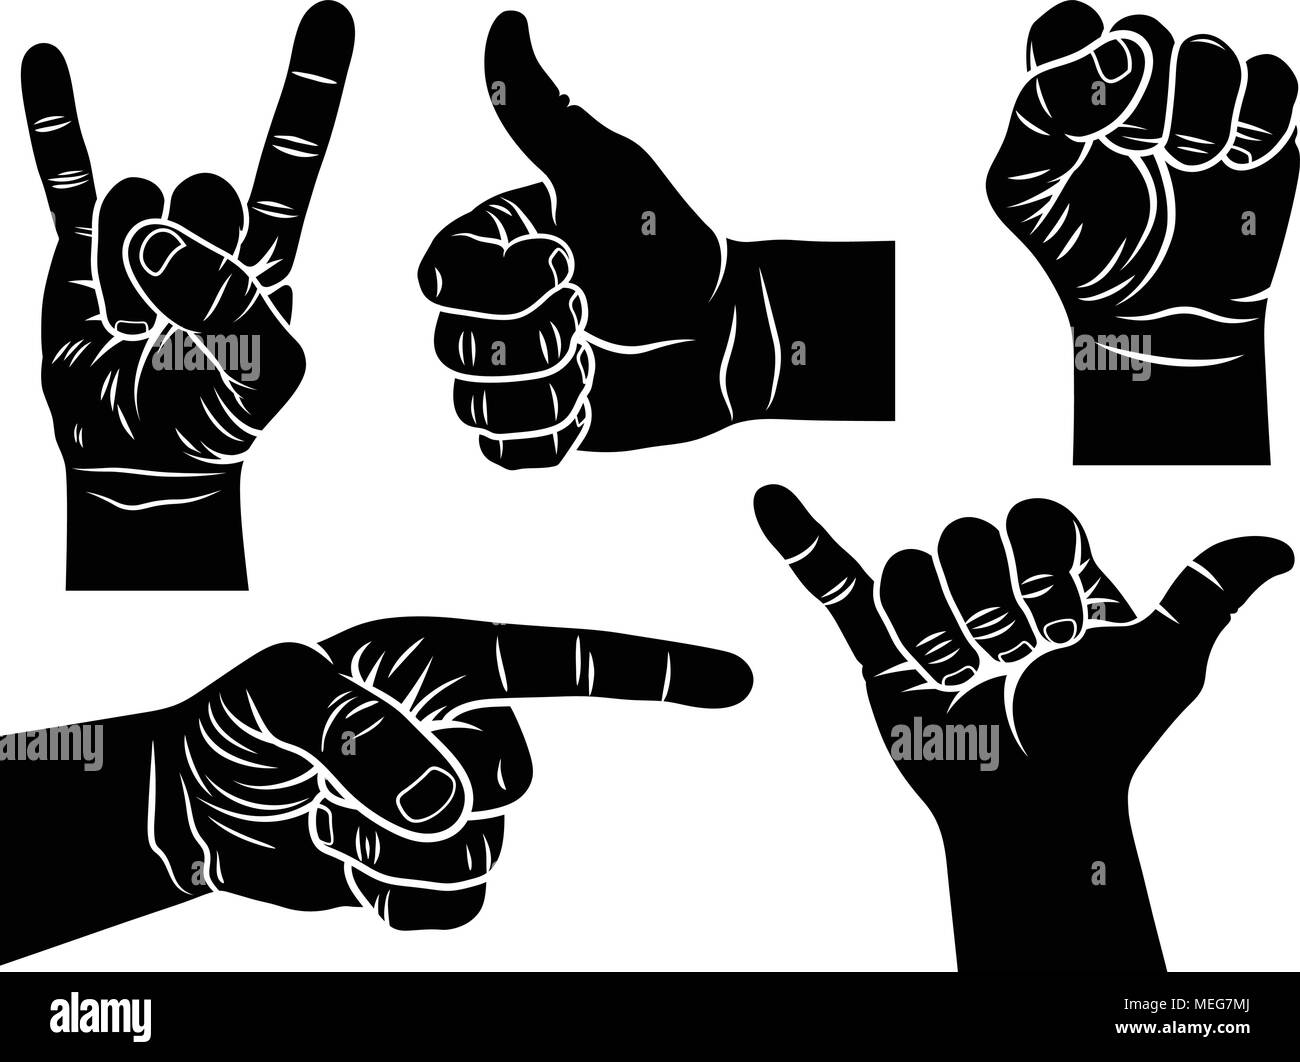 Hand Gestures And Signs Shaka Sign Male Fist A Hand Showing